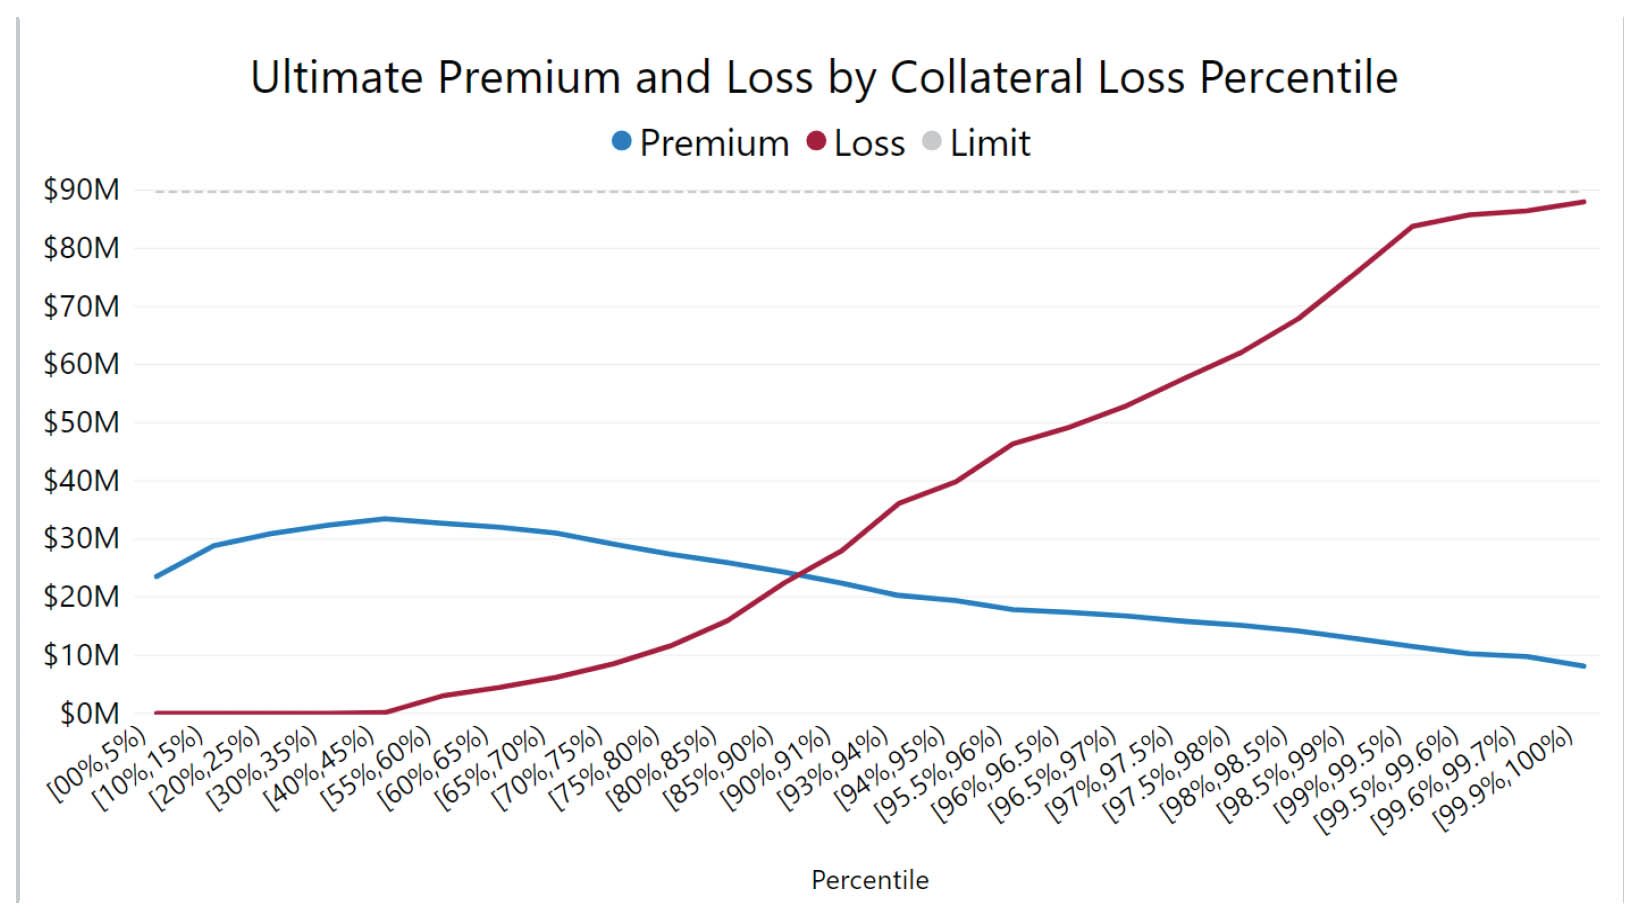 M-Pire Securitization Software, line graph of ultimate premium and loss by collateral loss percentile